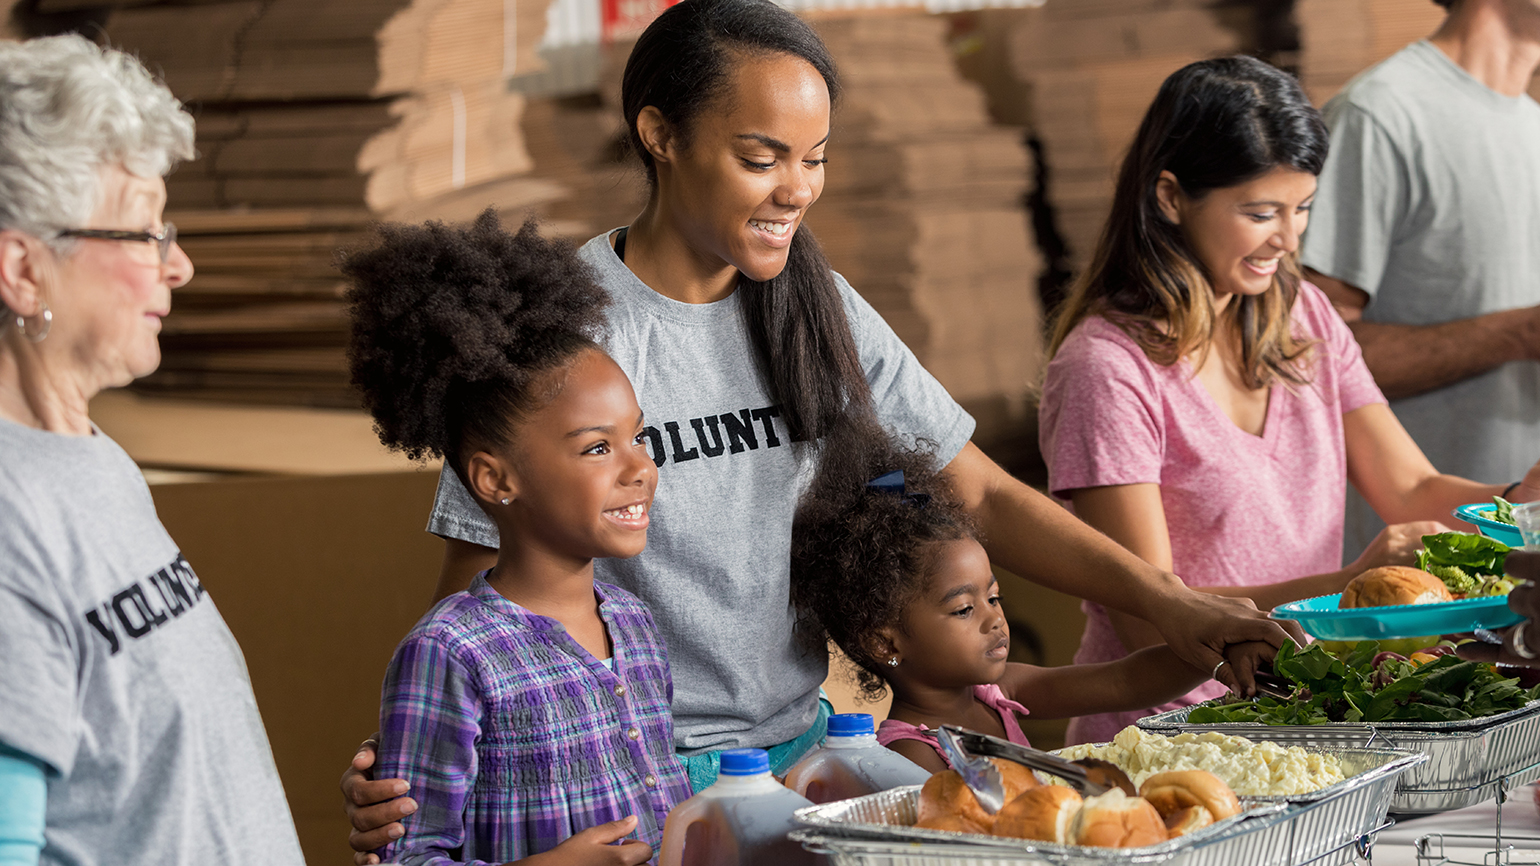 Women of all ages volunteering